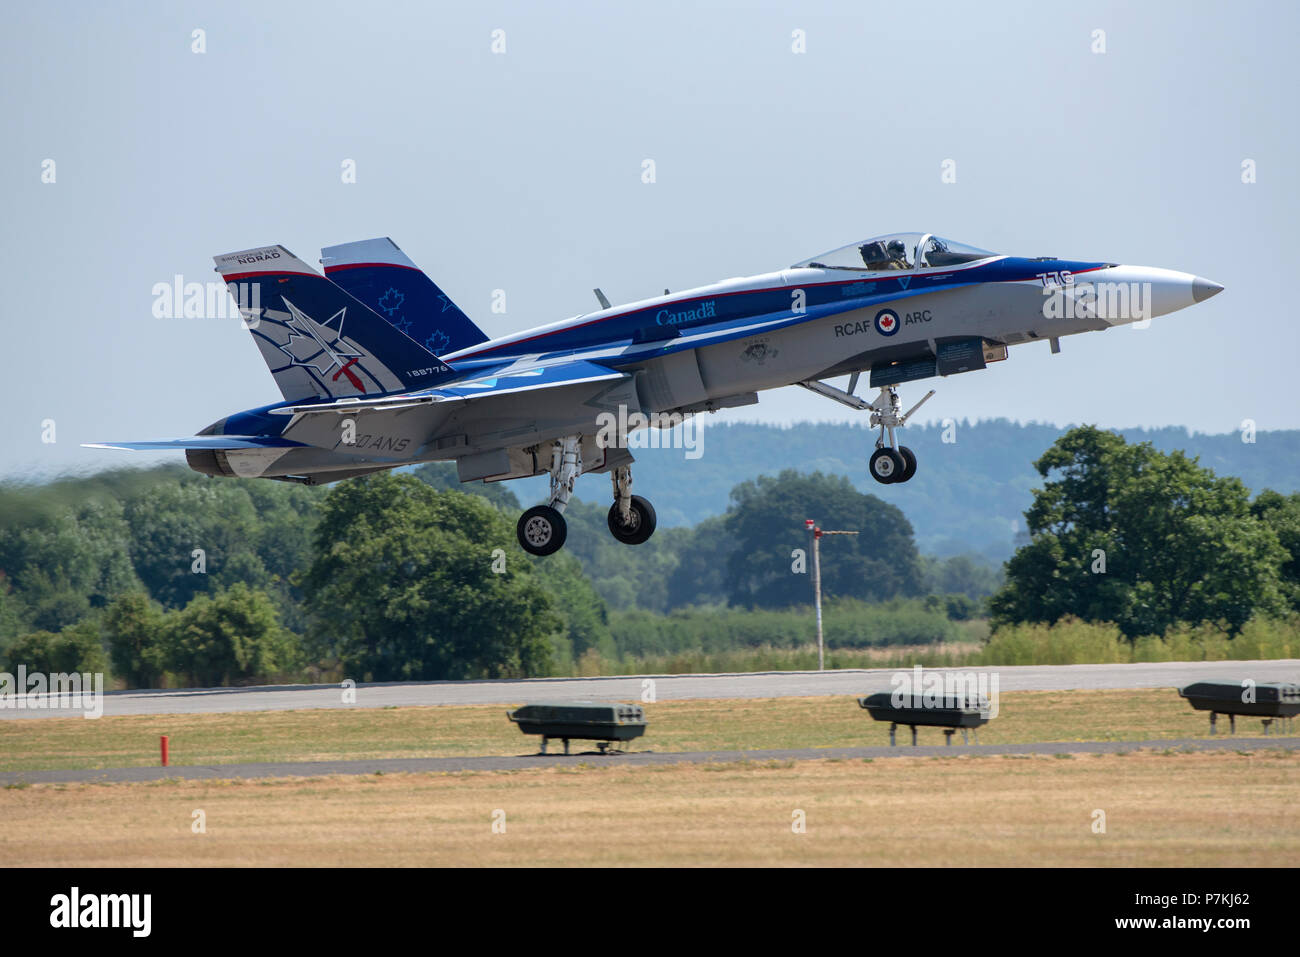 Yeovilton Royal Naval Air Station, Somerset, UK.. A Canadian Air Force twin tailed fighter jet, CF-18 Hornet landing. - Stock Image